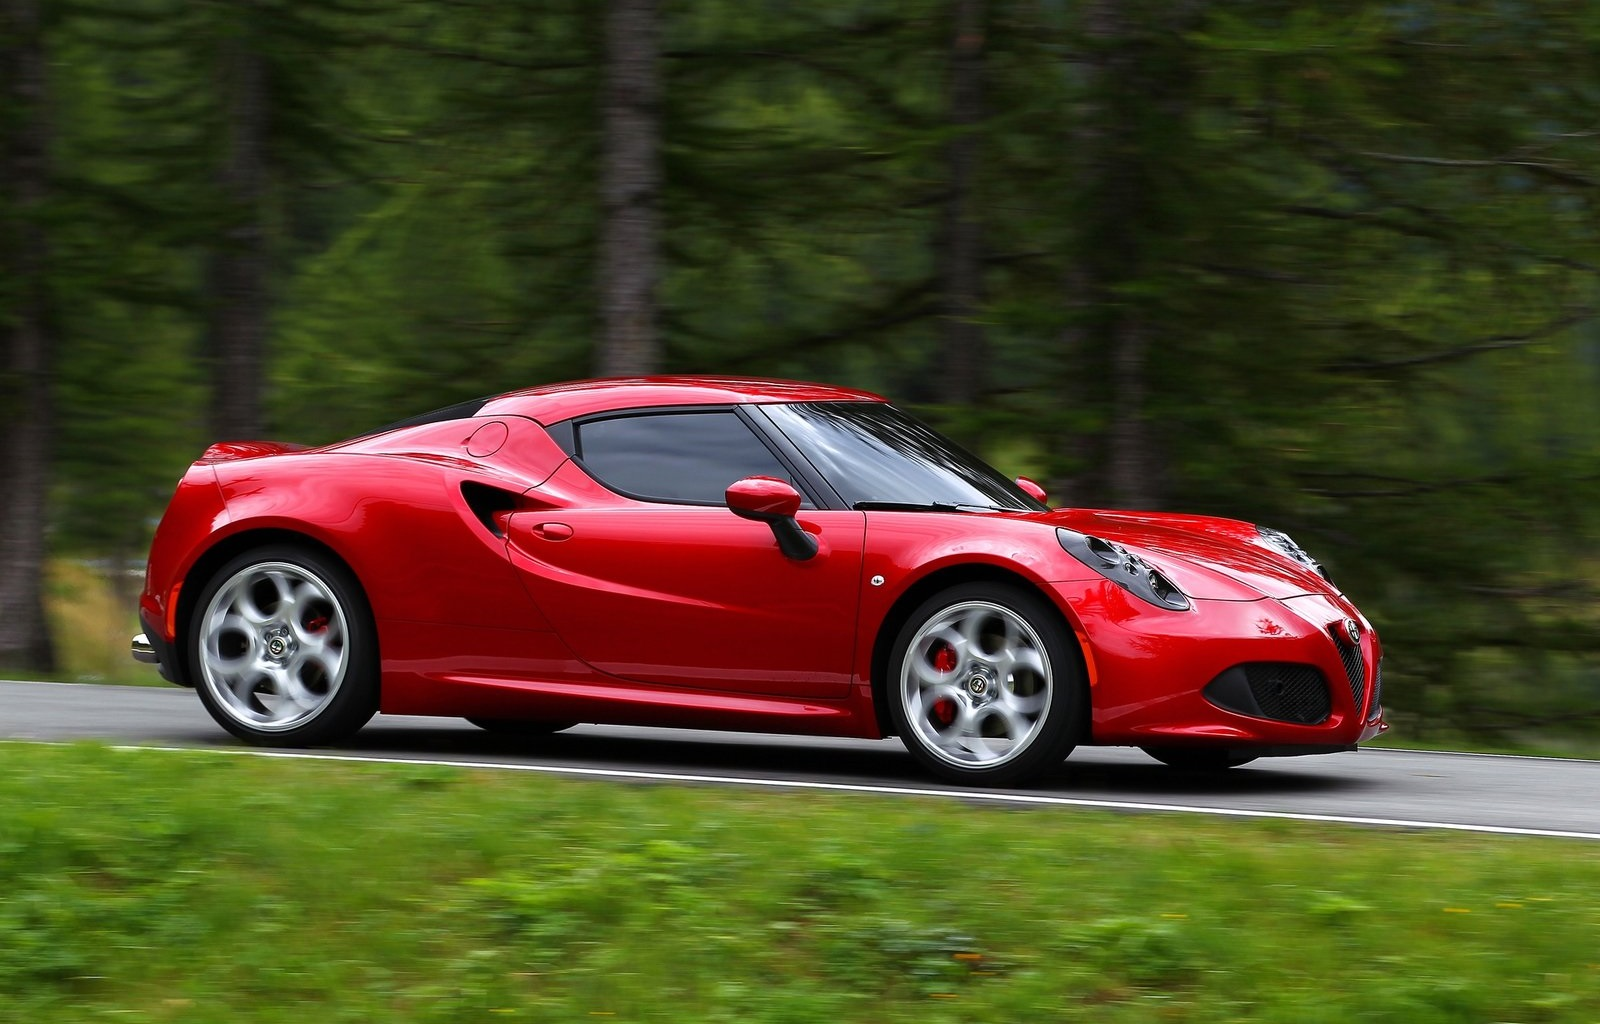 essai alfa romeo 4c nouvelle star speedfans. Black Bedroom Furniture Sets. Home Design Ideas